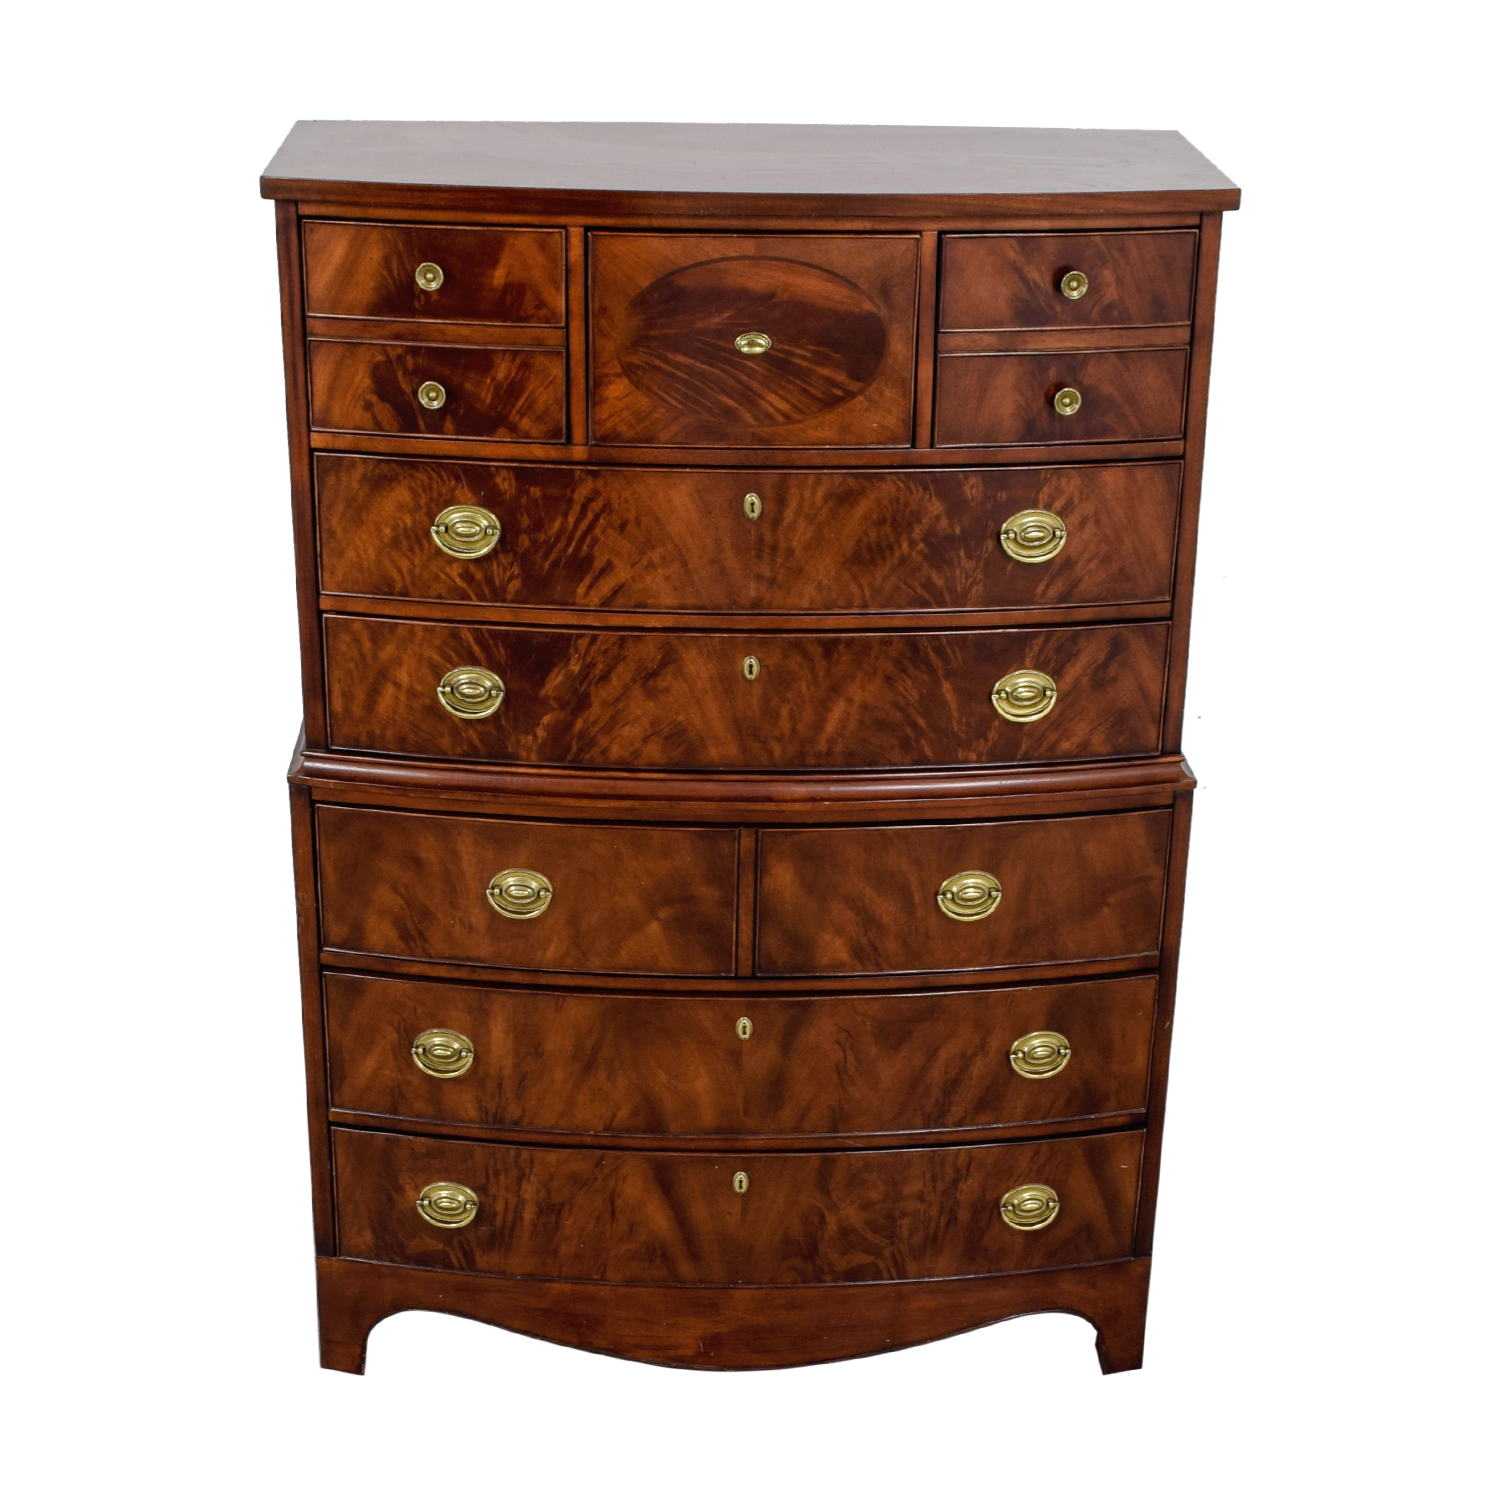 Broyhill Broyhill Anniversary Collection Dresser nyc